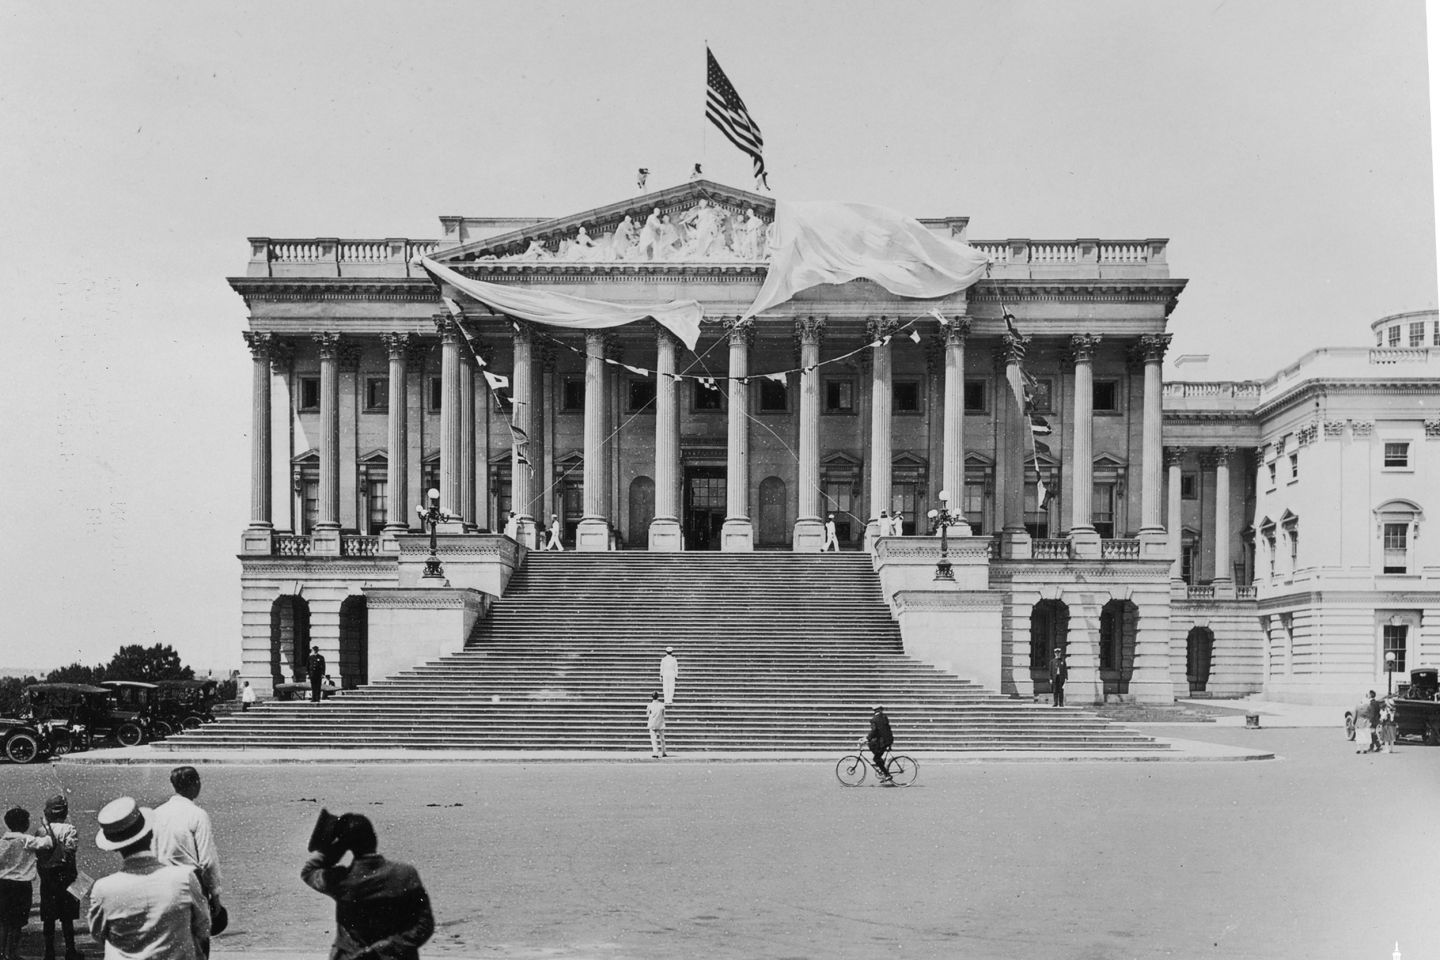 The Apotheosis of Democracy pediment during its unveiling on August 2, 1916.